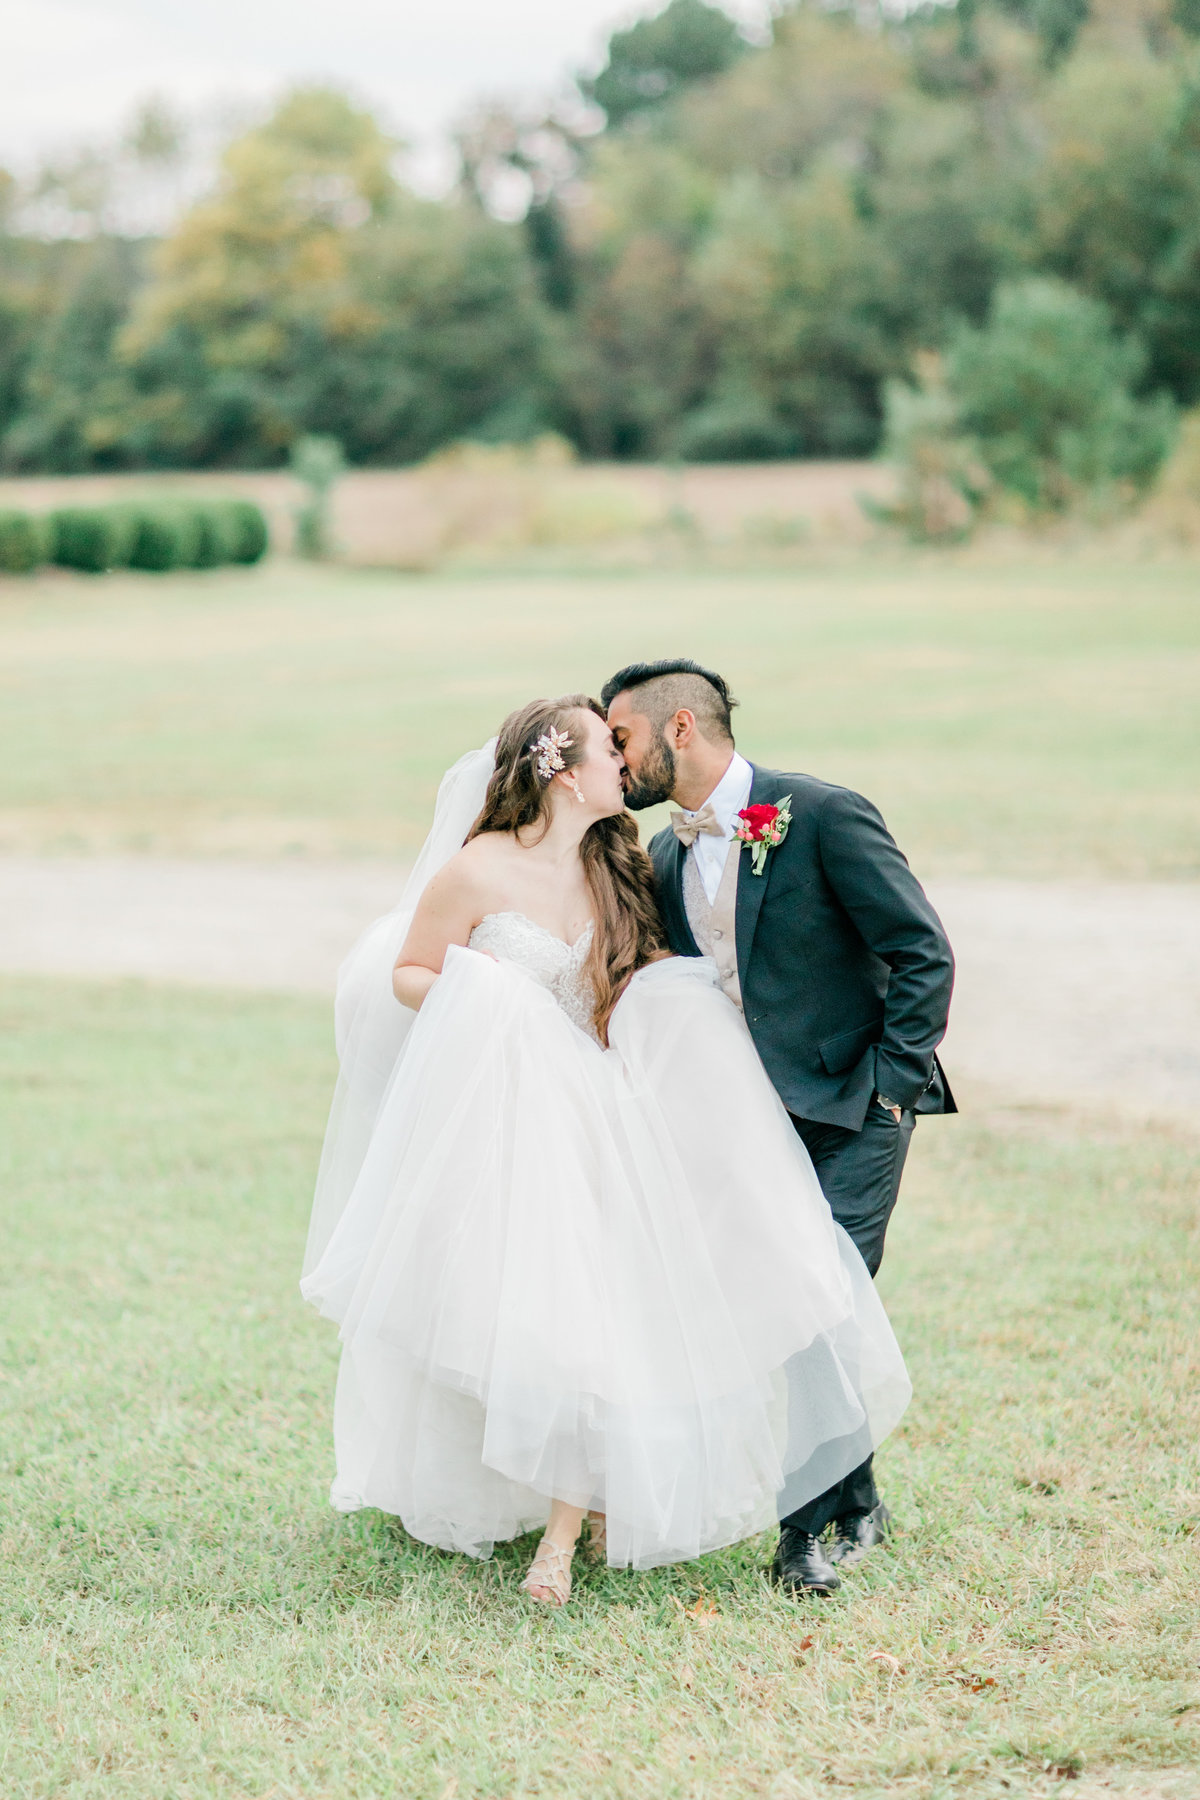 Williamsburg_Winery_Fall_Wedding_Virginia_DC_Photographer_Angelika_Johns_Photography-0001